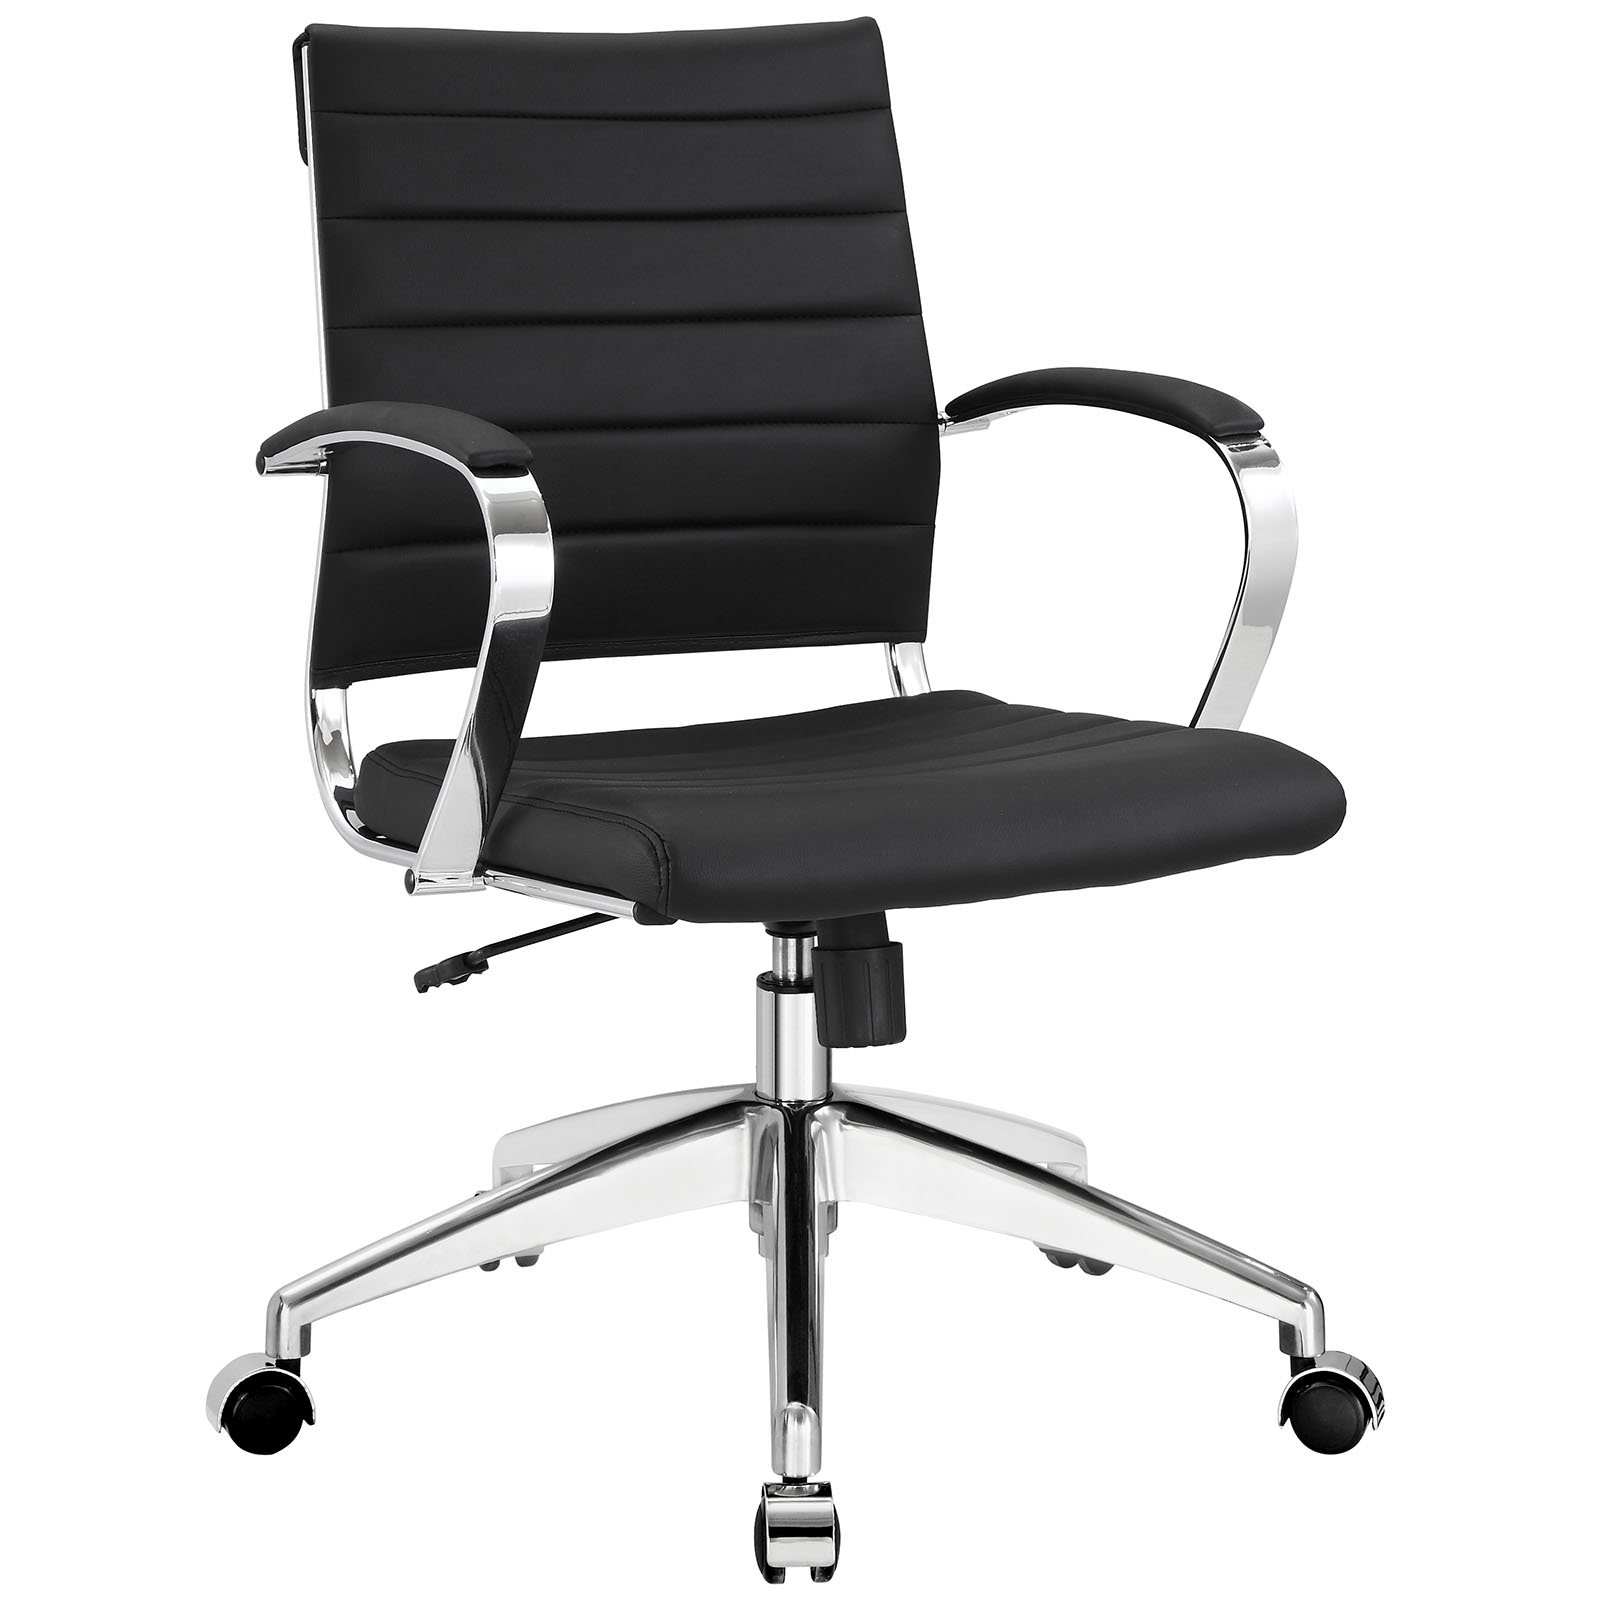 Modway Jive Ribbed Mid Back Executive Office Chair With Arms In Black